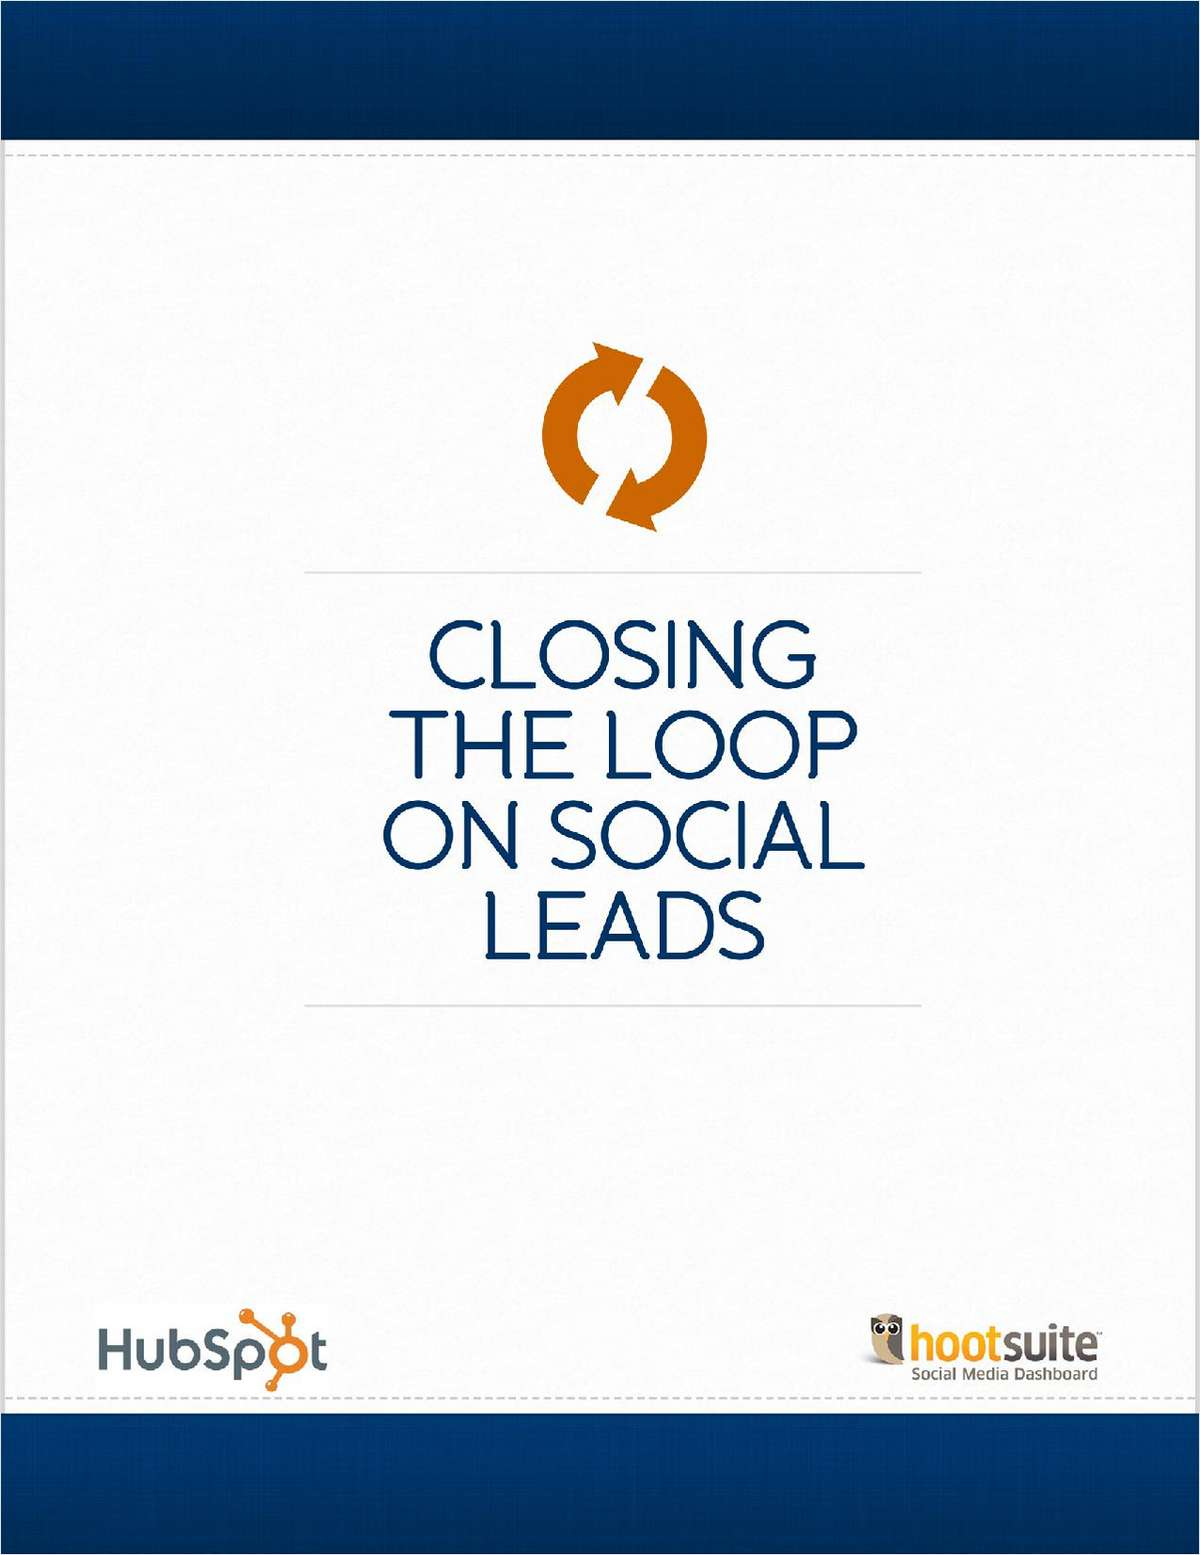 Closing the Loop on Social Leads